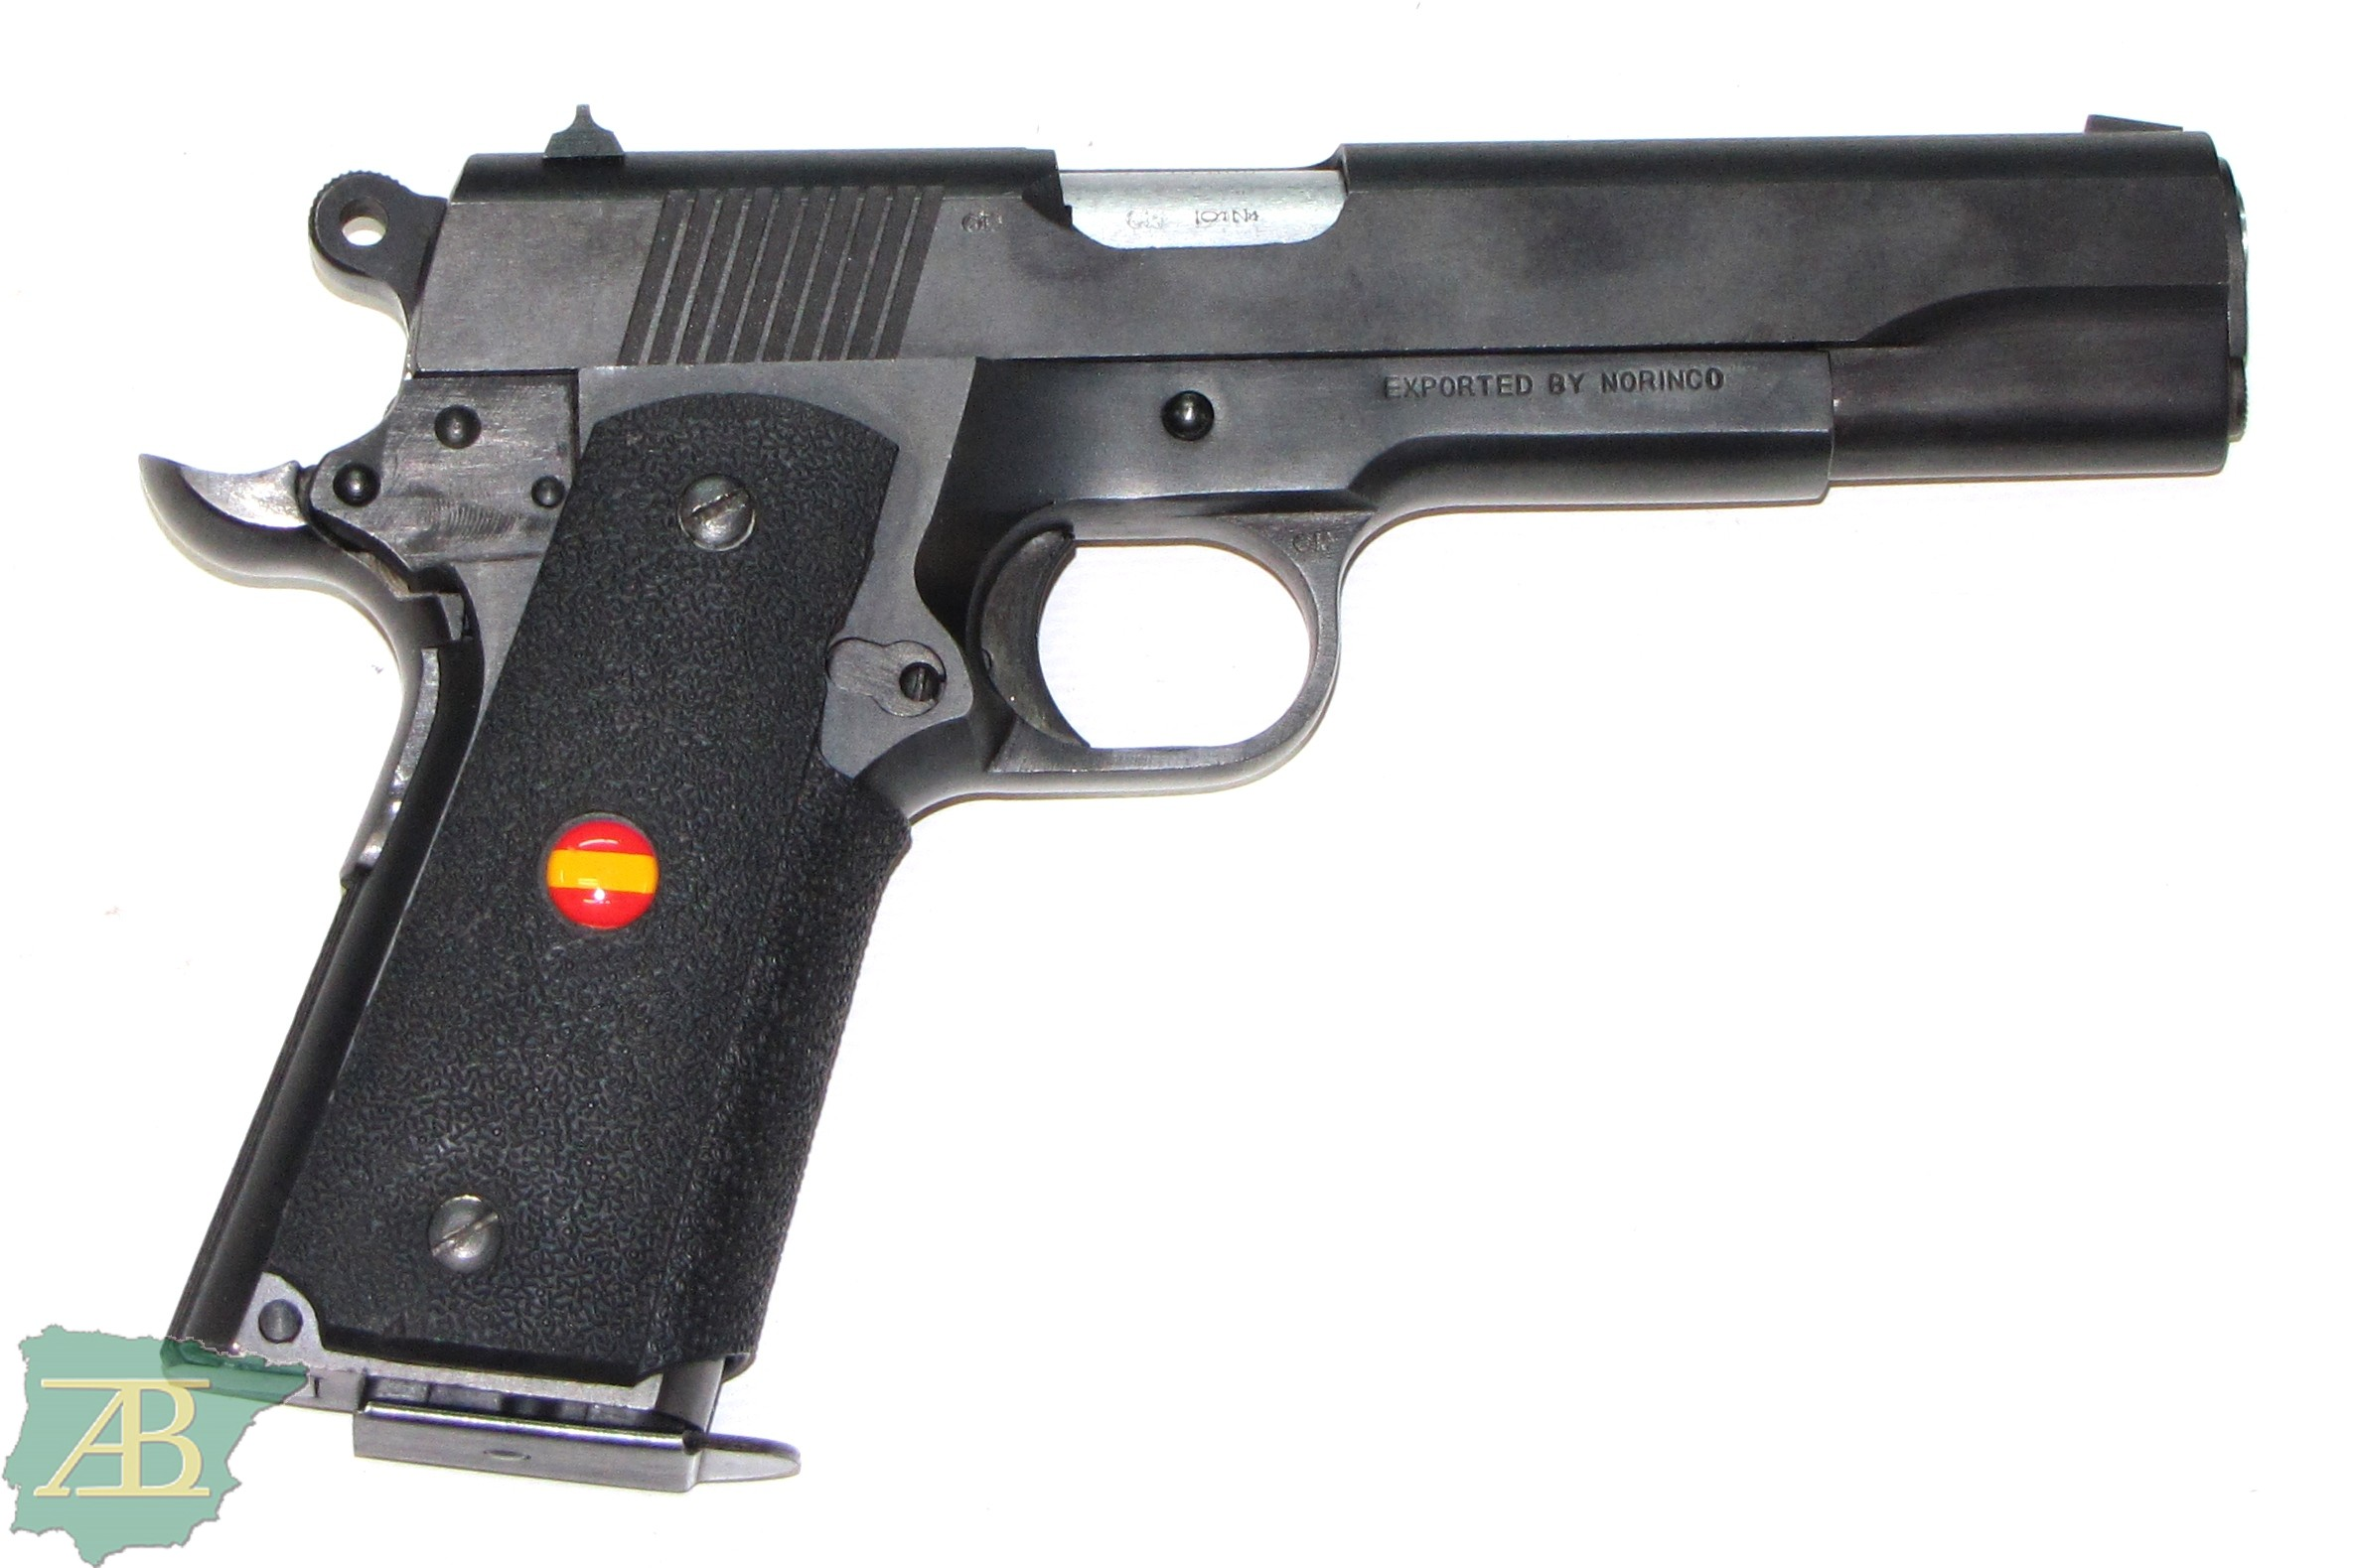 PISTOLA NORINCO 9 MM PB Ref. 5582